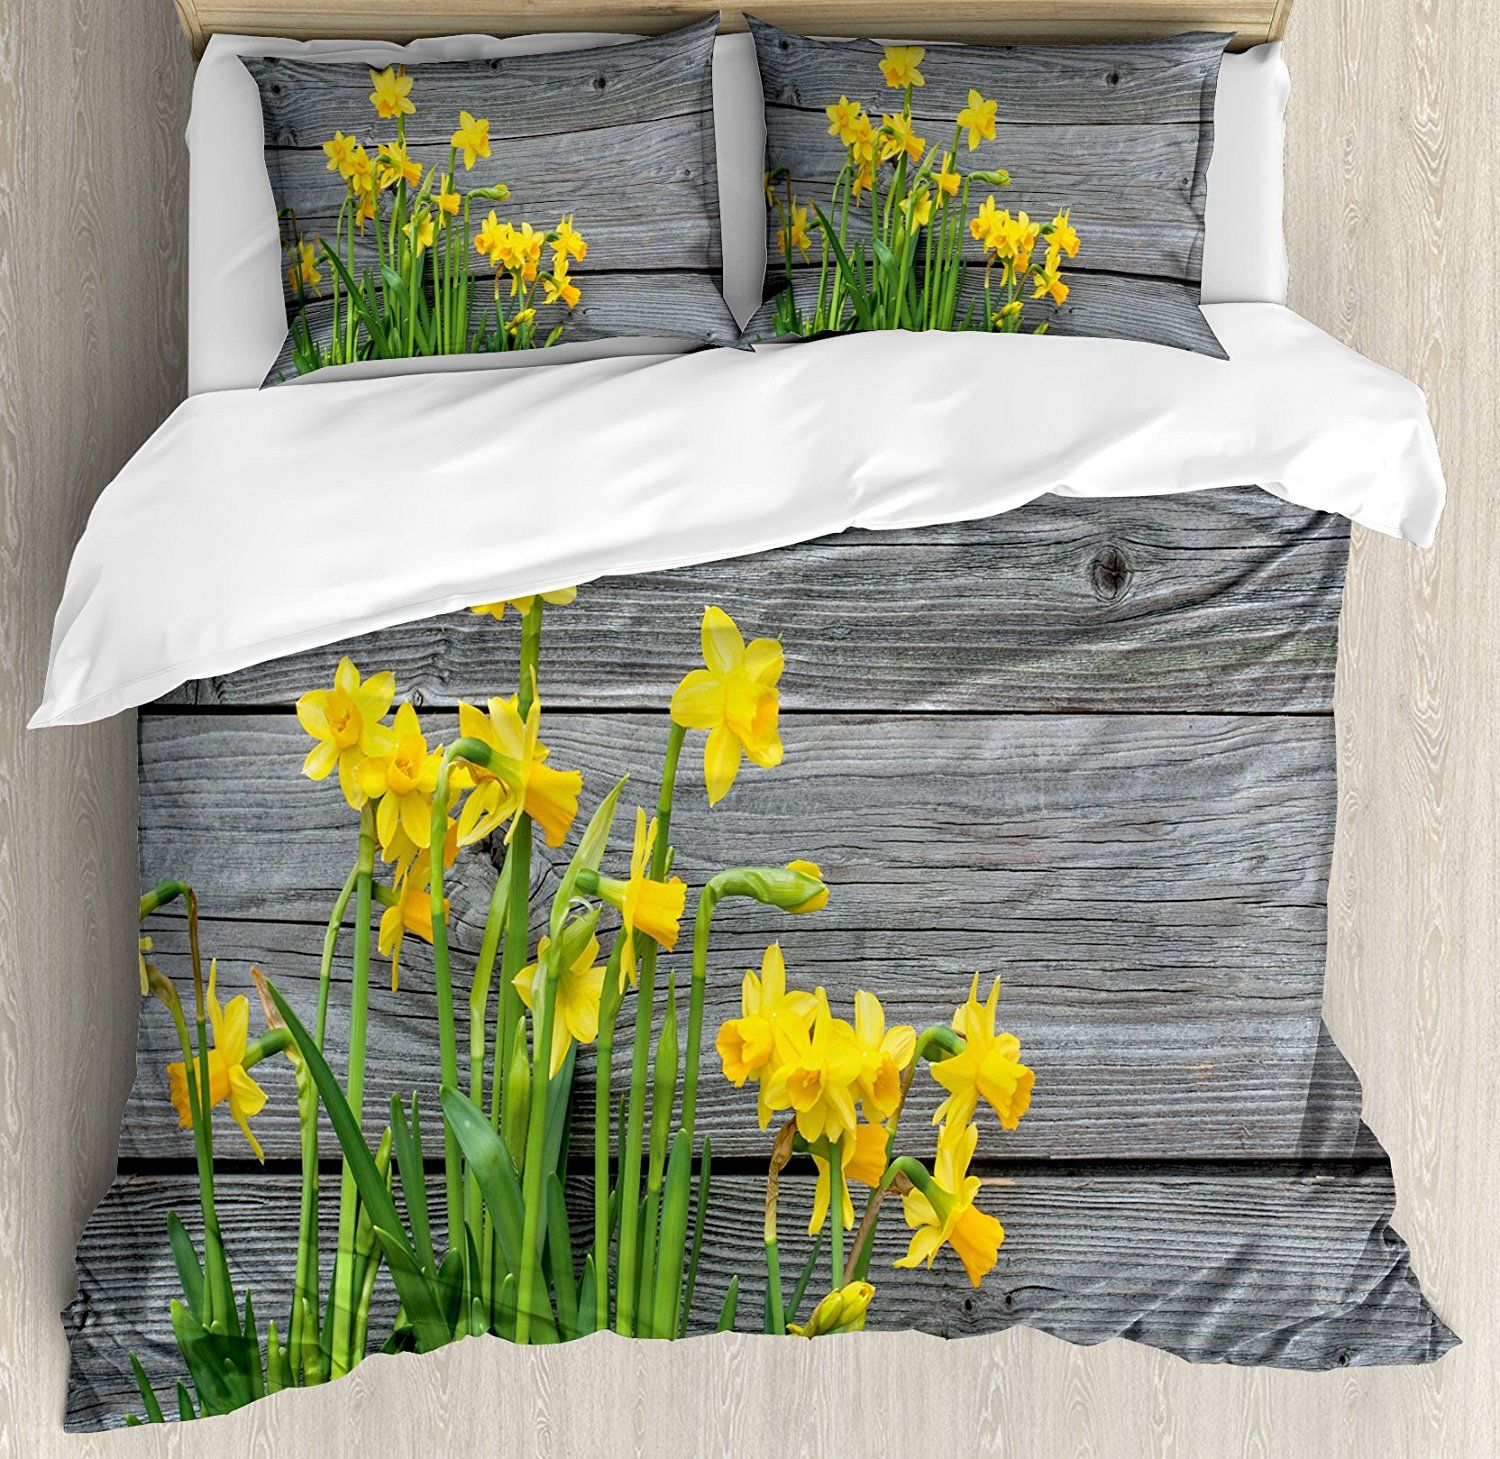 Yellow Flower Duvet Cover Set Bouquet of Daffodils on Wood Planks Gardening Rustic Country Life Theme Bedding Set Yellow GreyYellow Flower Duvet Cover Set Bouquet of Daffodils on Wood Planks Gardening Rustic Country Life Theme Bedding Set Yellow Grey